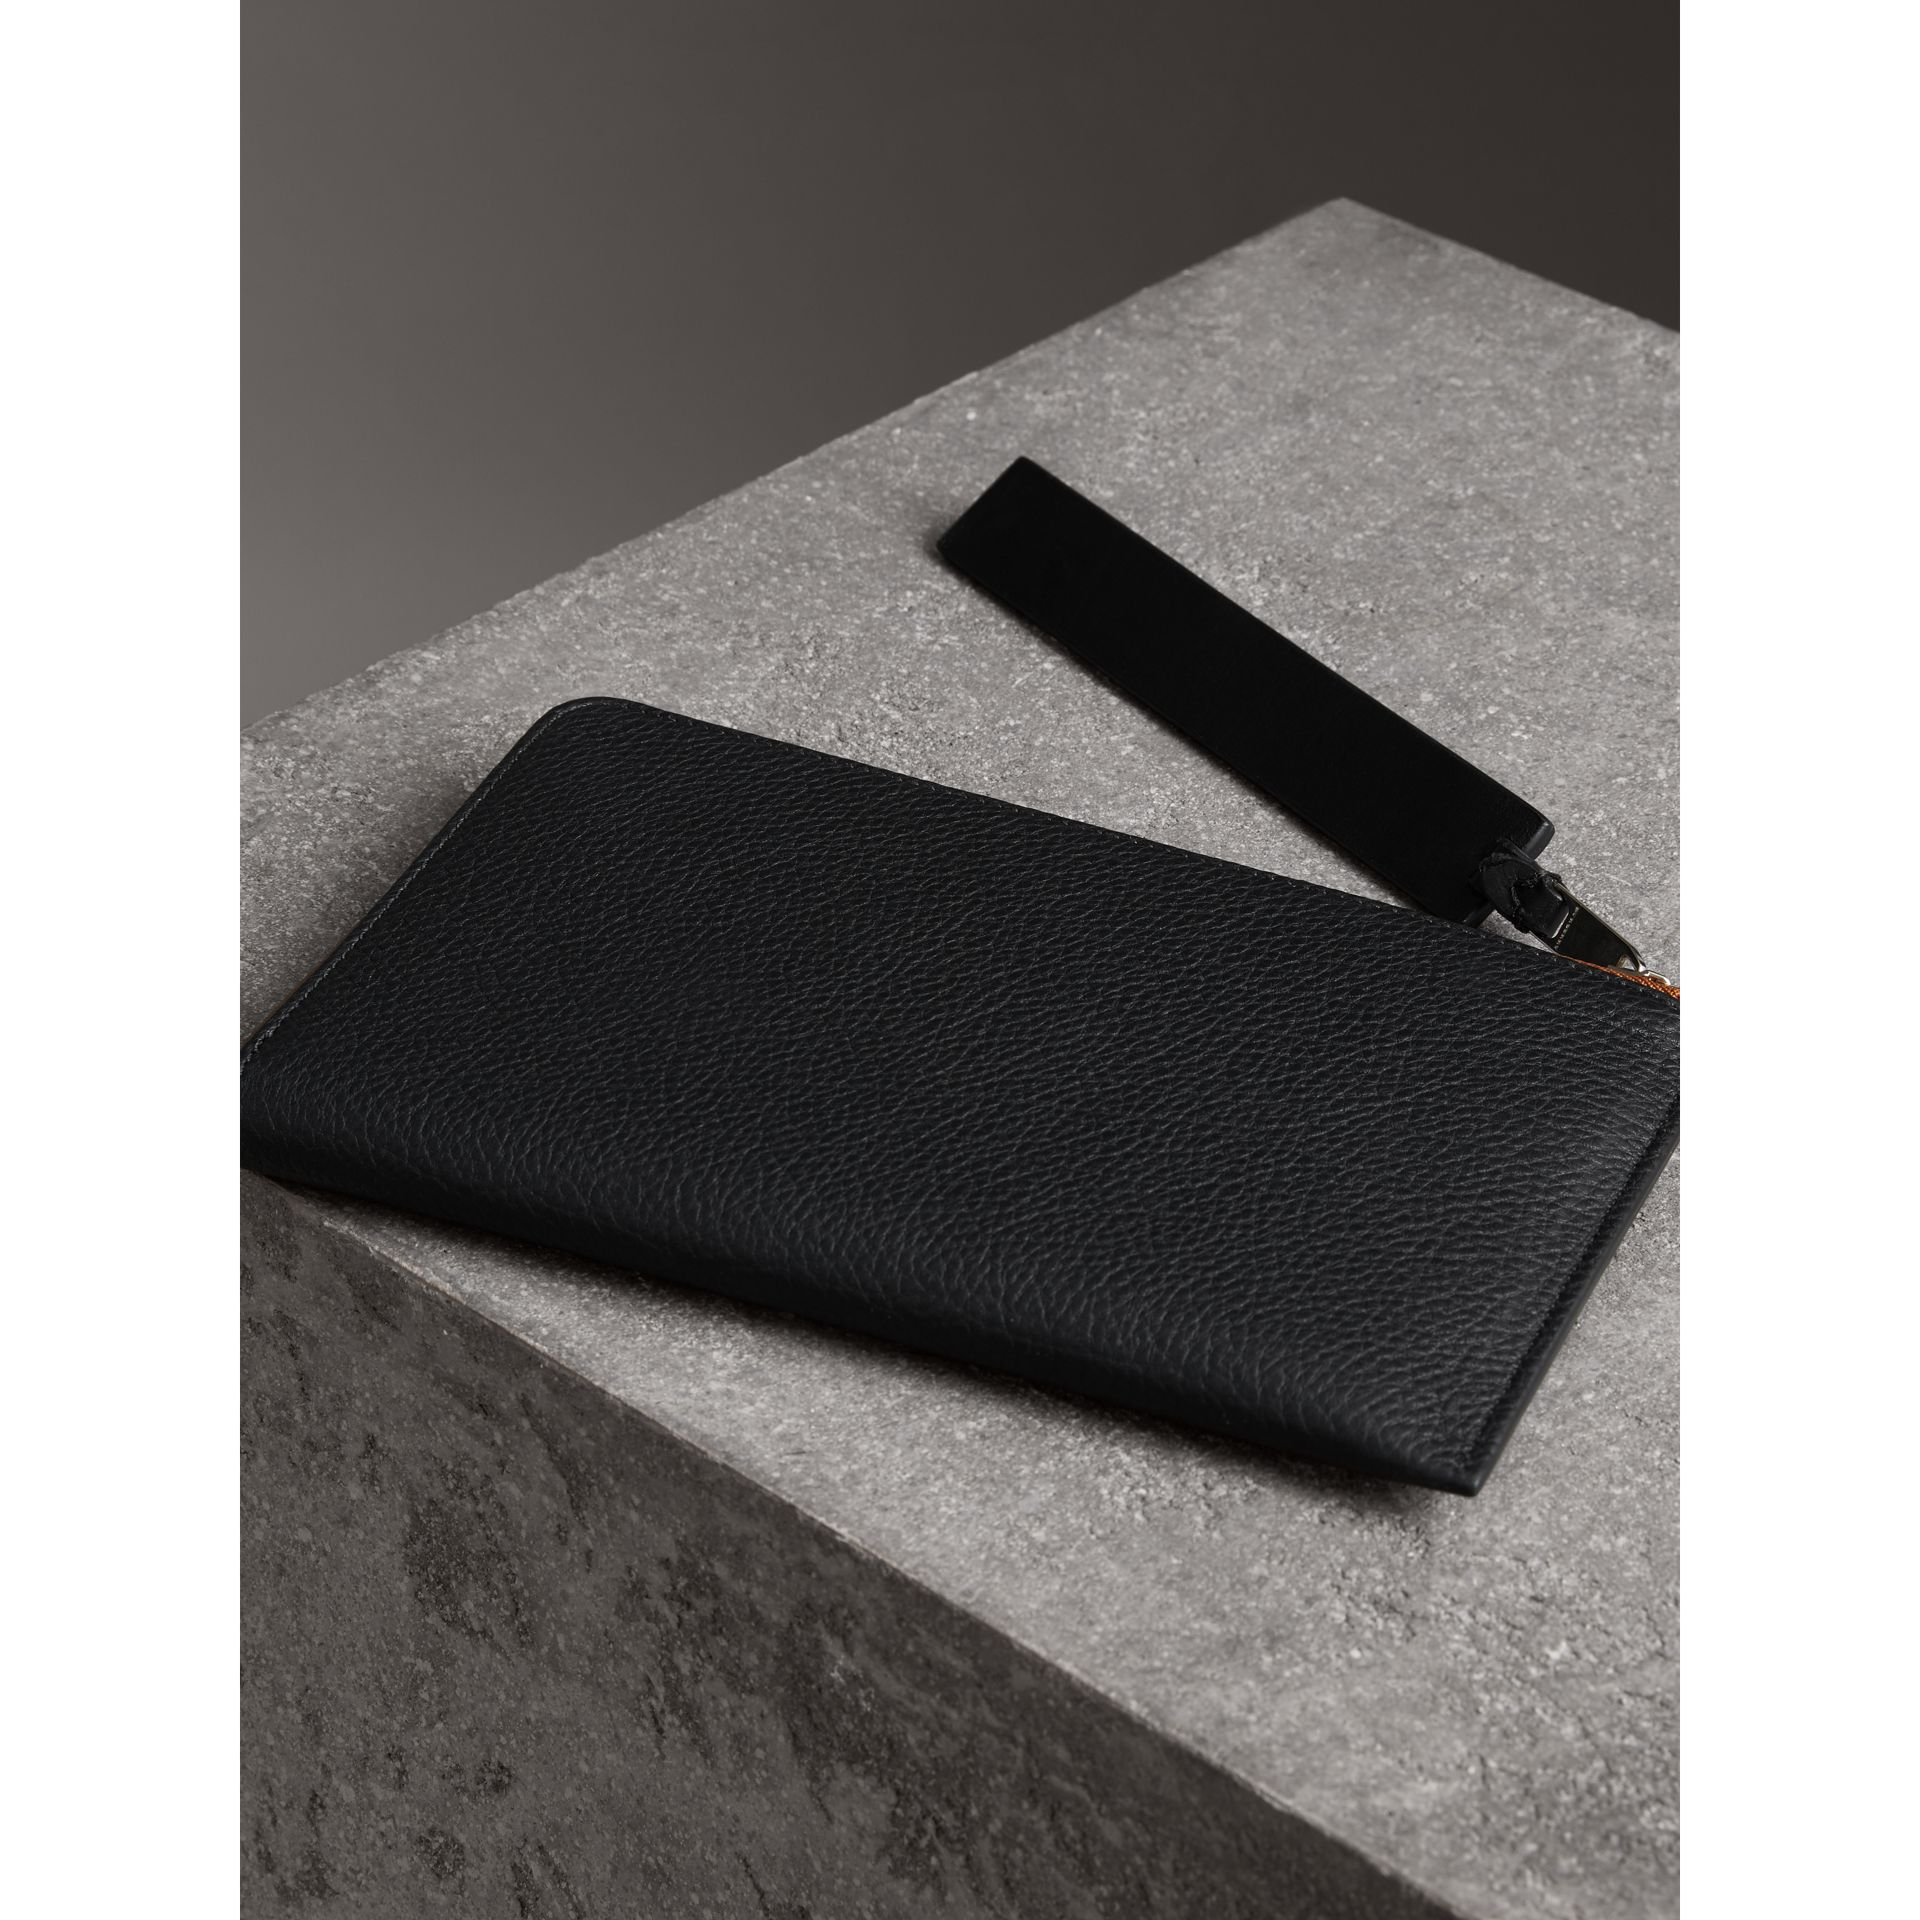 Two-tone Grainy Leather Travel Wallet in Black - Men | Burberry - gallery image 5